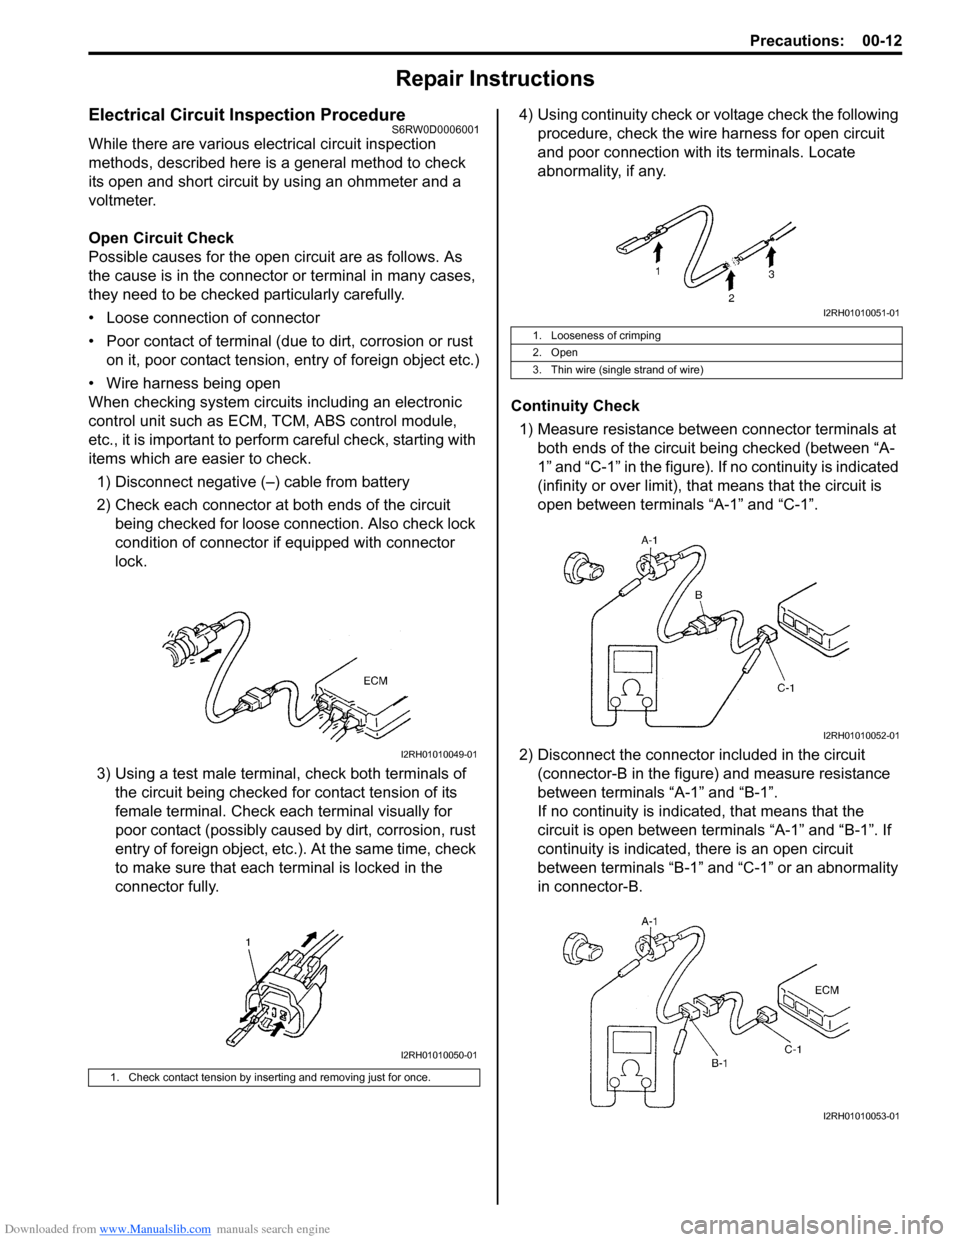 Abs Suzuki Sx4 2006 1g Service Workshop Manual An Open Circuit Will Show No Continuity Or Infinite Resistance A Page 19 Of 1556